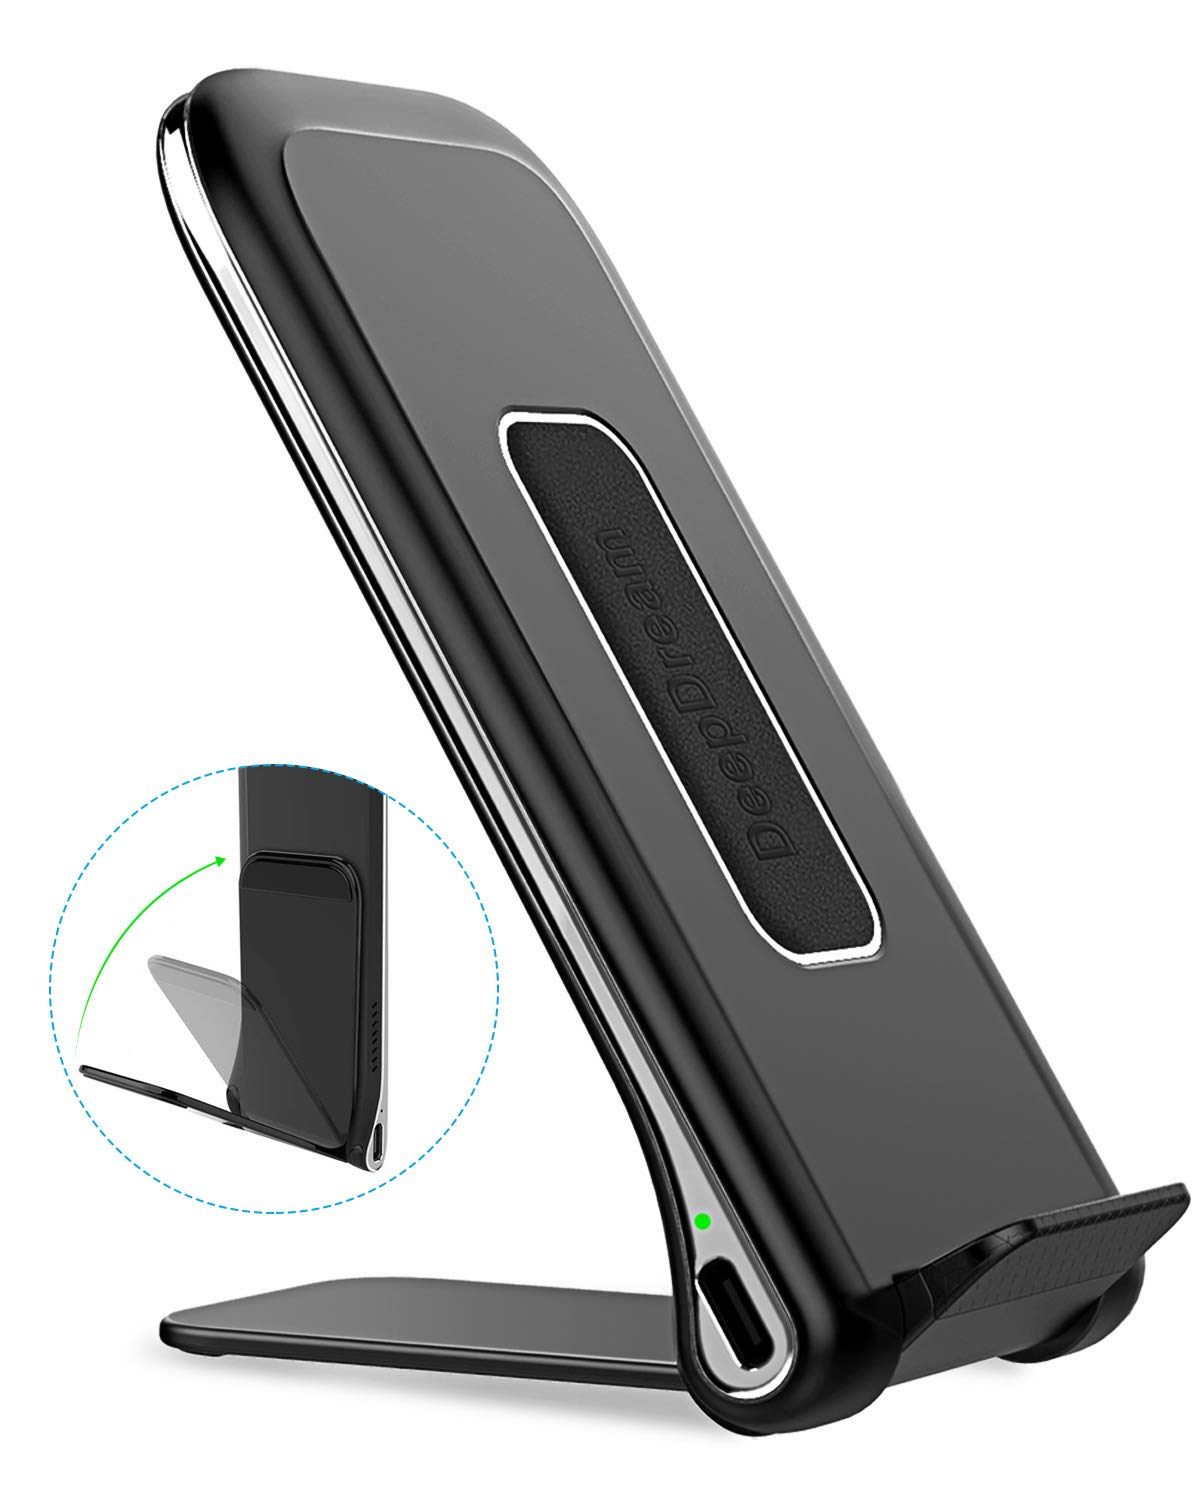 DeepDream Fast Wireless Charger Foldable, 10W Qi-Certified Wireless Charging Stand